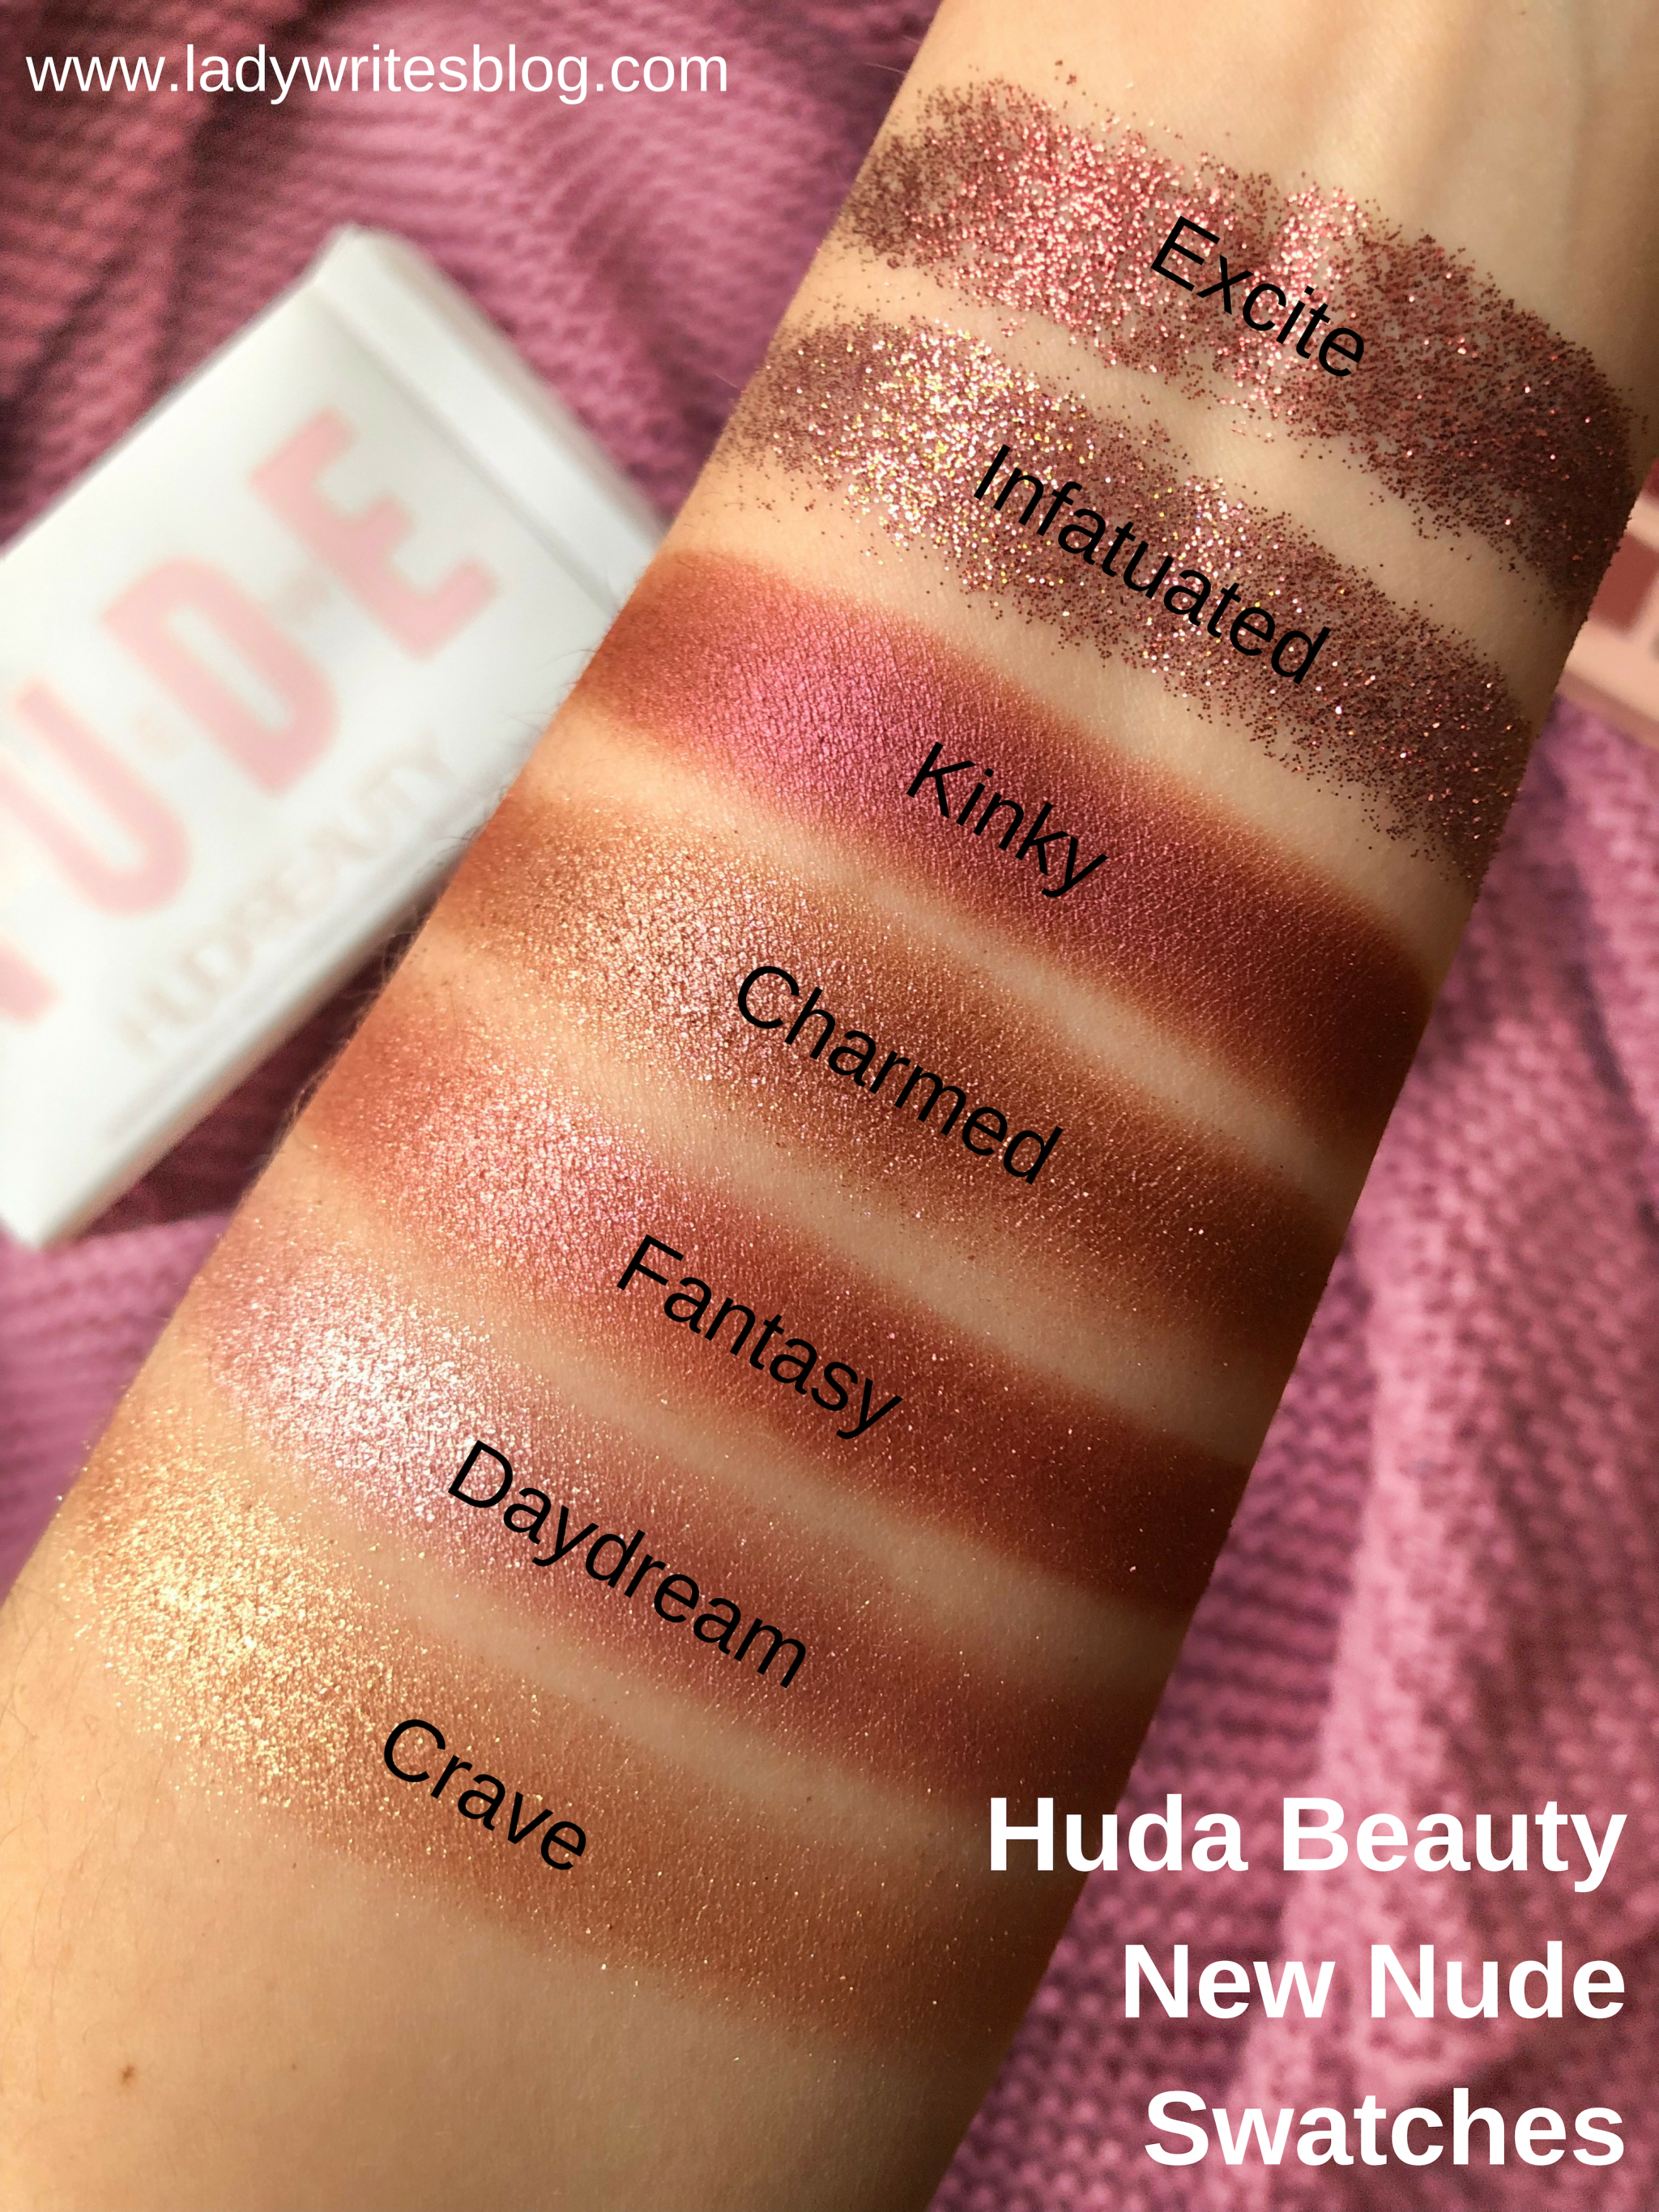 Huda New Nude Swatches